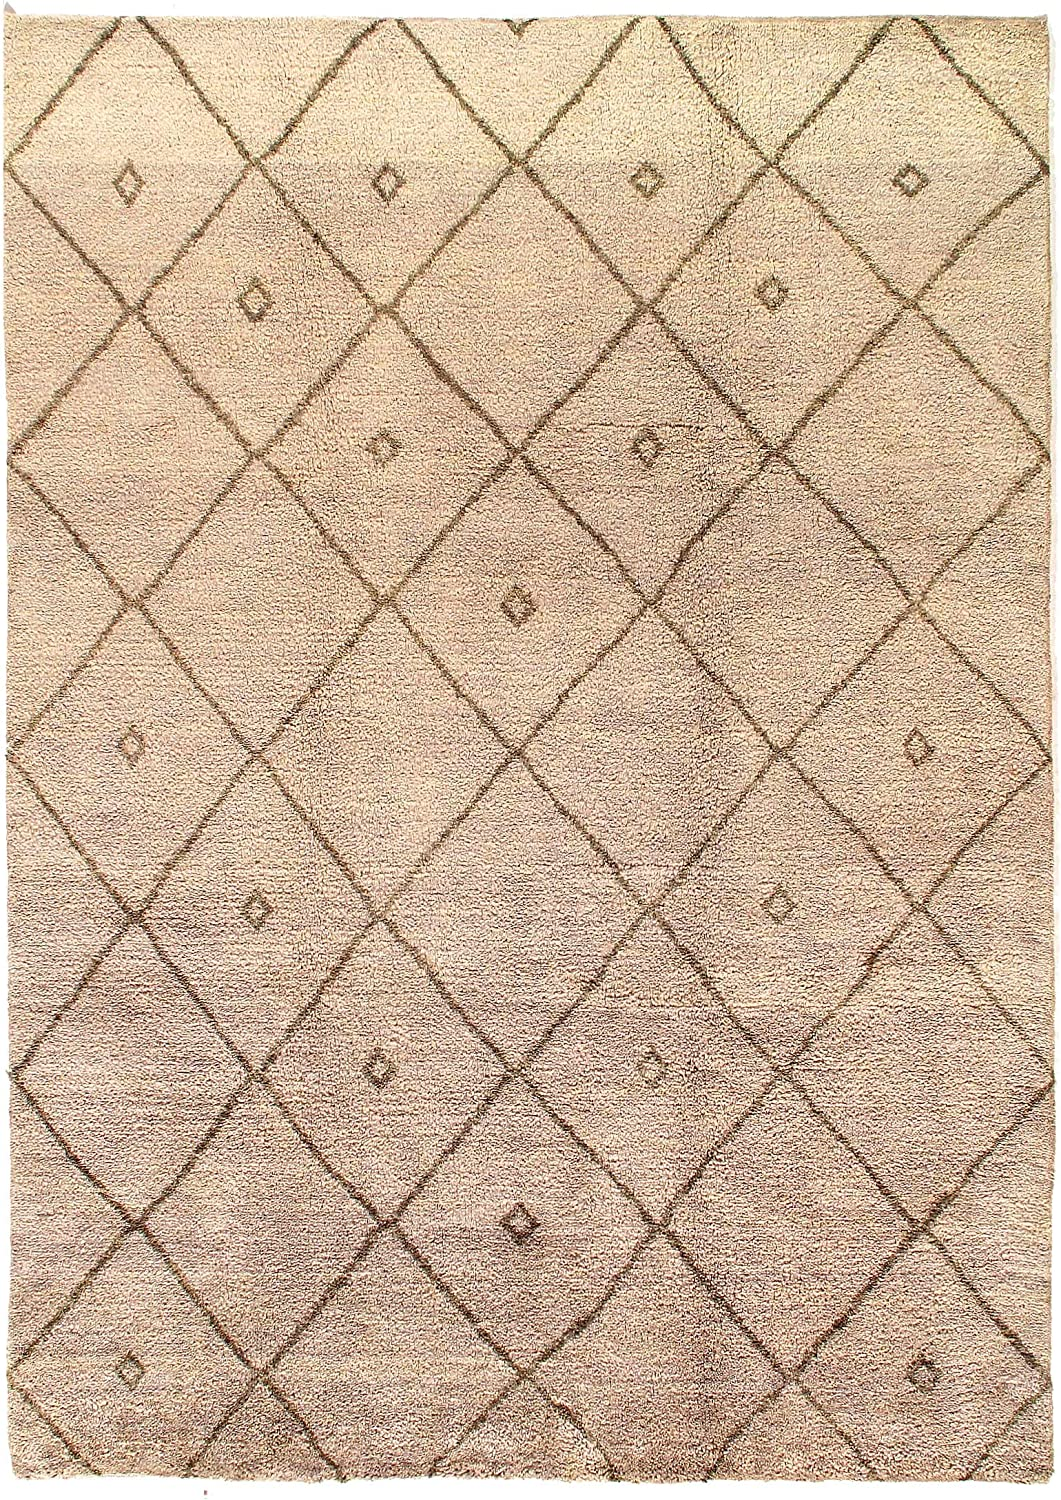 Calicomfy Hand Made Al sold out. Anti Slip Beige Home Area Rug Moroccan overseas for